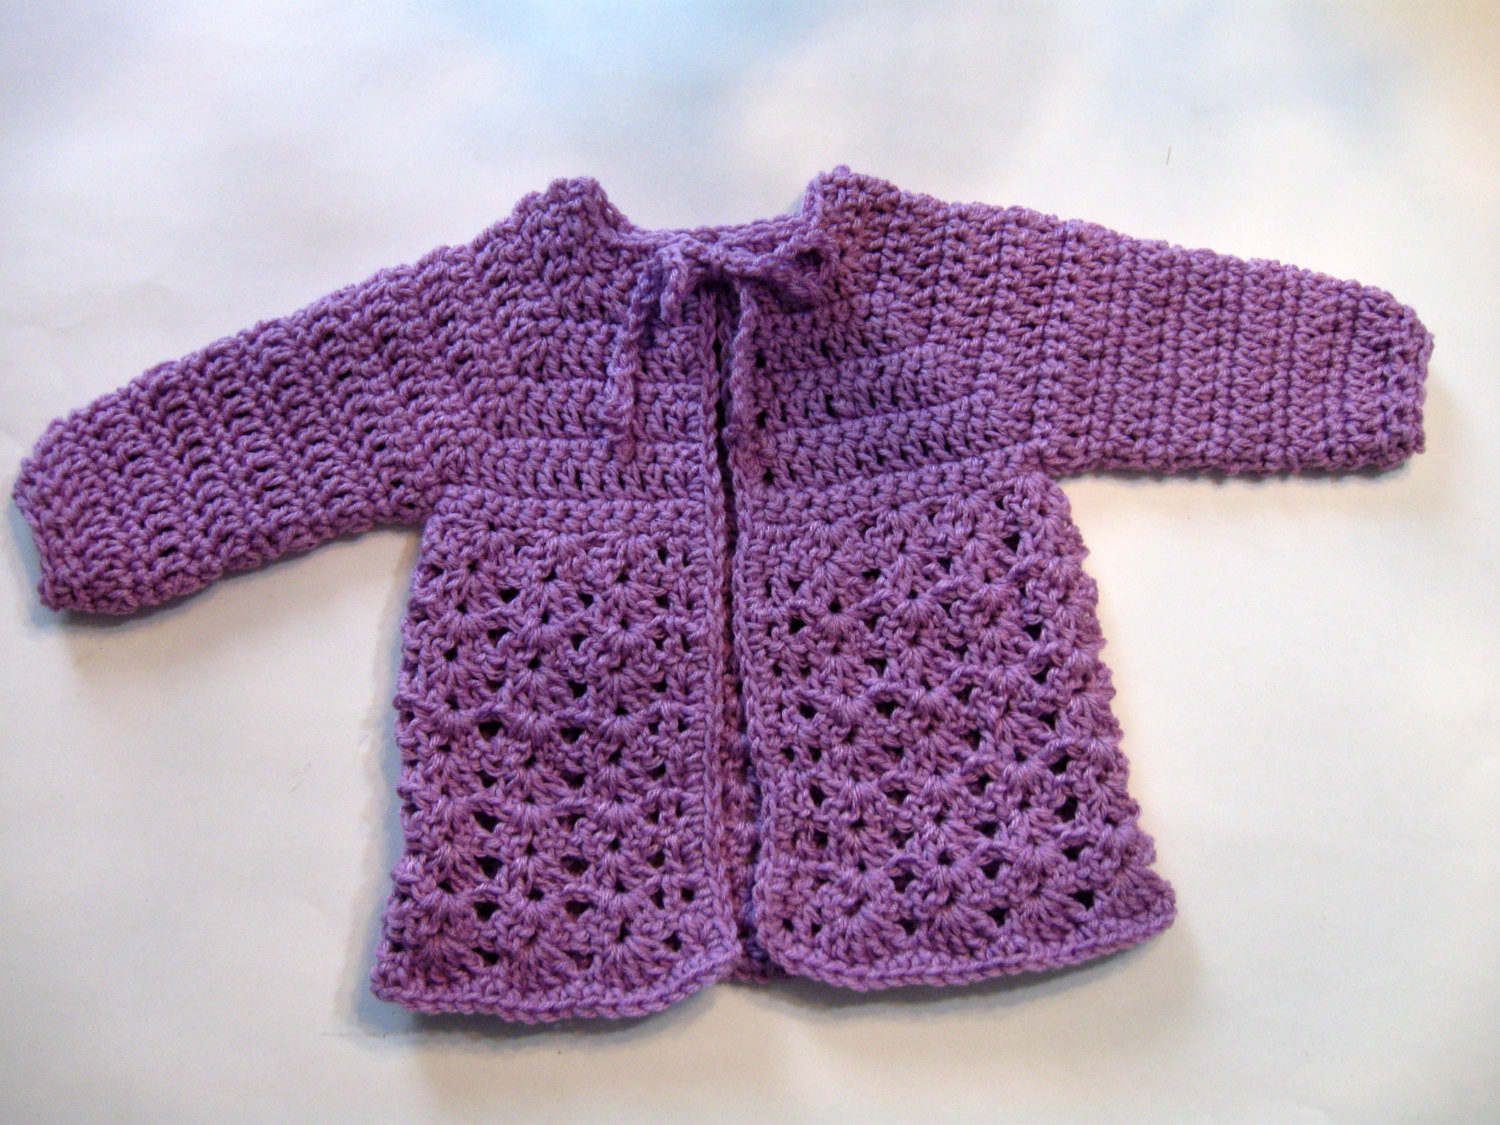 Best Of Simple Crochet Baby Sweater Easy Crochet Sweater Pattern Of Elegant Telluride Easy Knit Kimono Pattern – Mama In A Stitch Easy Crochet Sweater Pattern